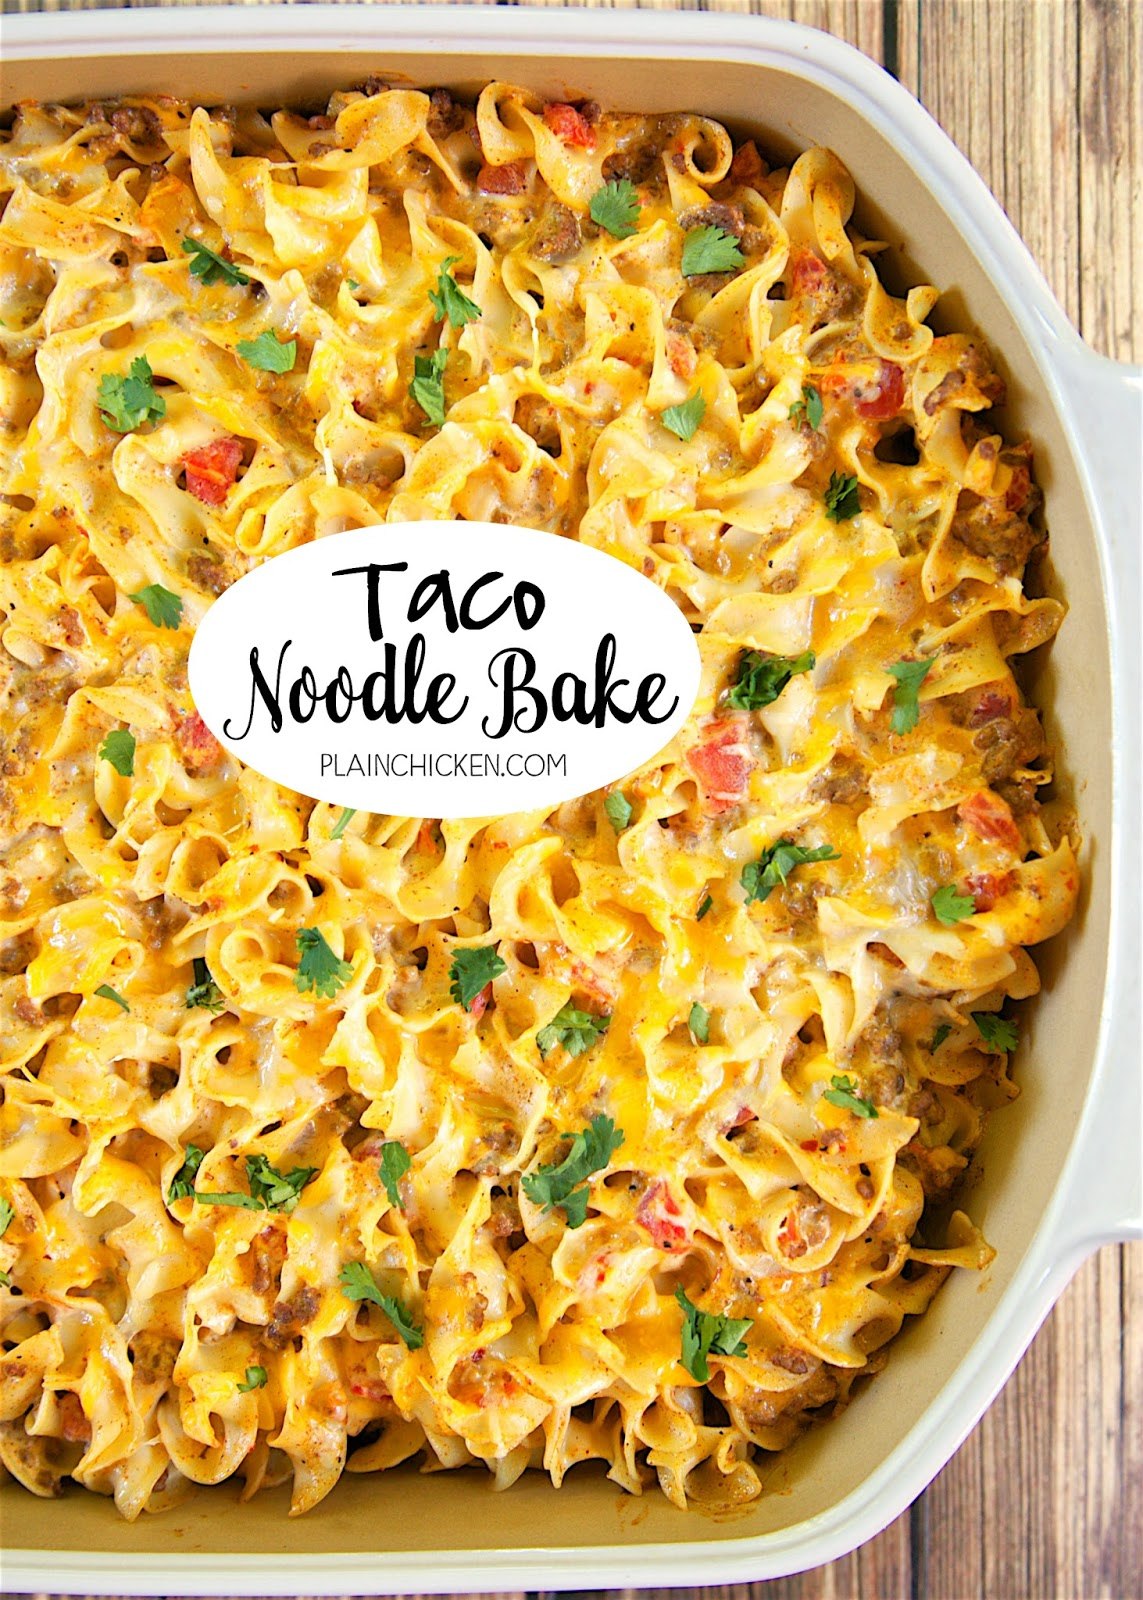 Taco Noodle Bake - SO good!!! Egg noodles, taco meat, cheese, diced tomatoes and green chiles, cheddar cheese soup and sour cream. Everyone cleaned their plate and asked for seconds! Makes a great freezer meal too!! LOVE this easy Mexican casserole!!!